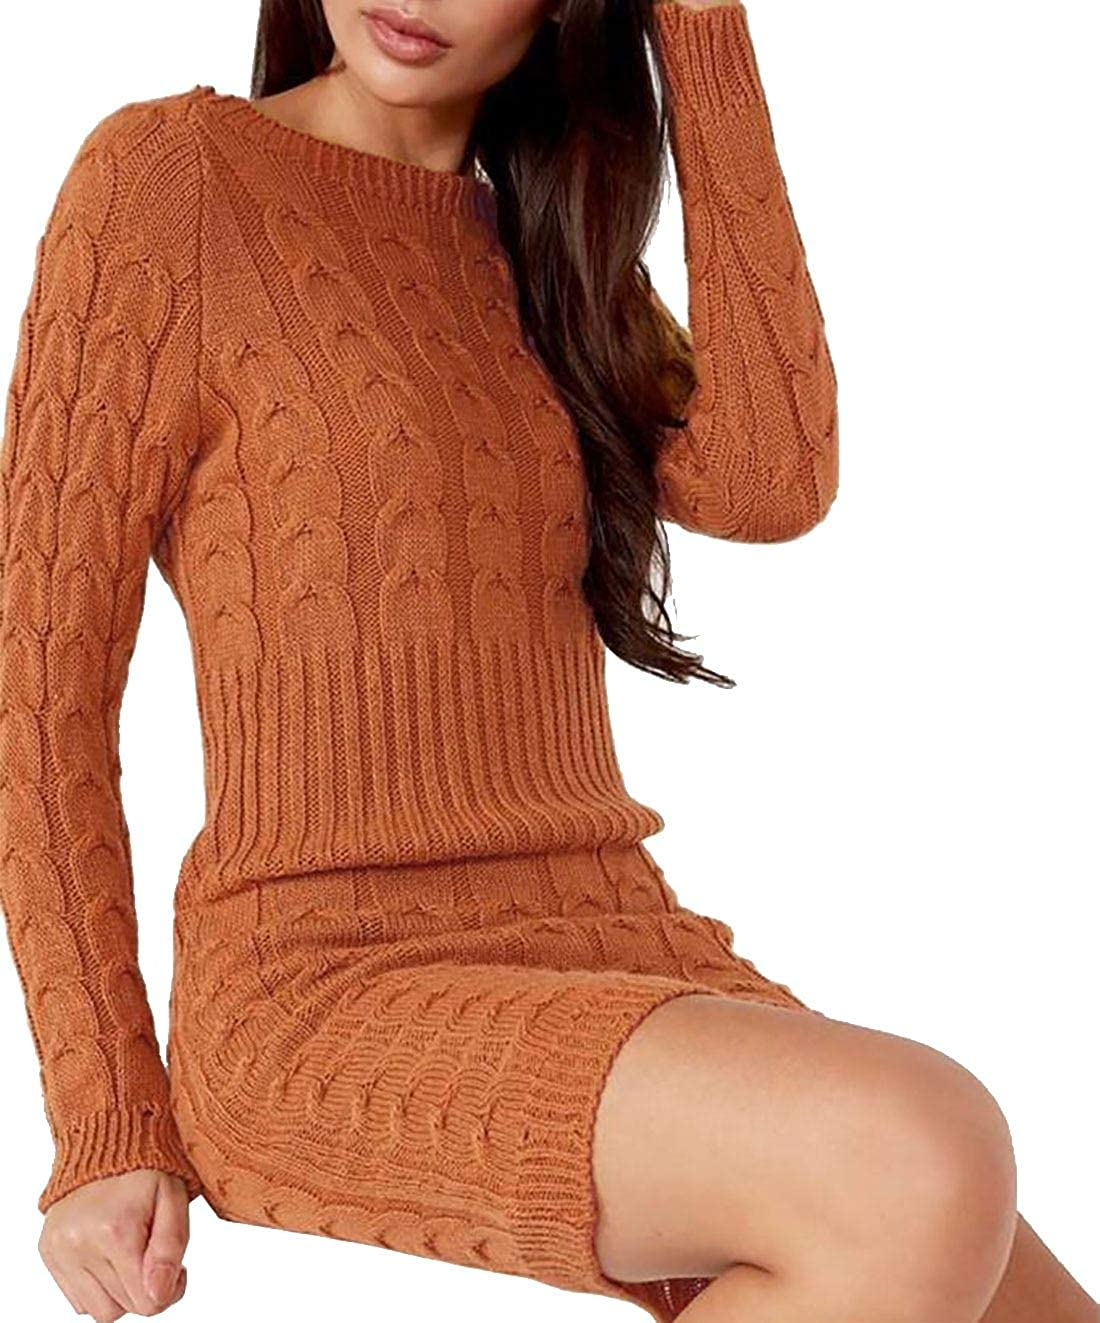 fashioncrazexx Ladies Distressed Italian Cable Knitted Jumper Ladies Fancy Winter Wear Midi Dress Top